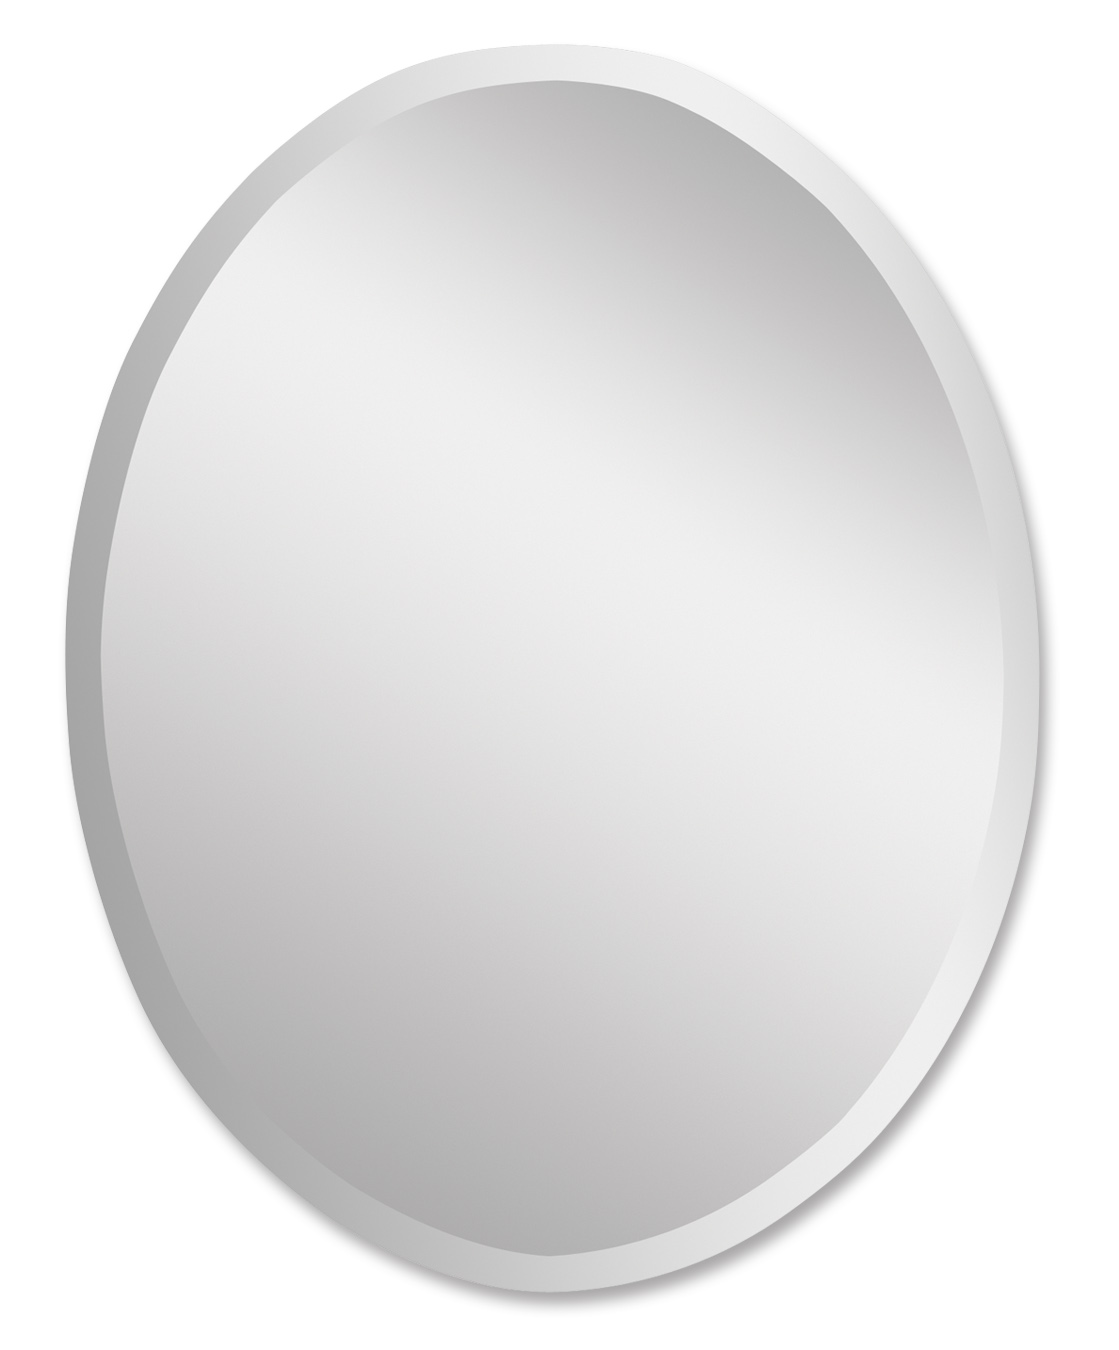 uttermost 19580 b frameless vanity oval mirror